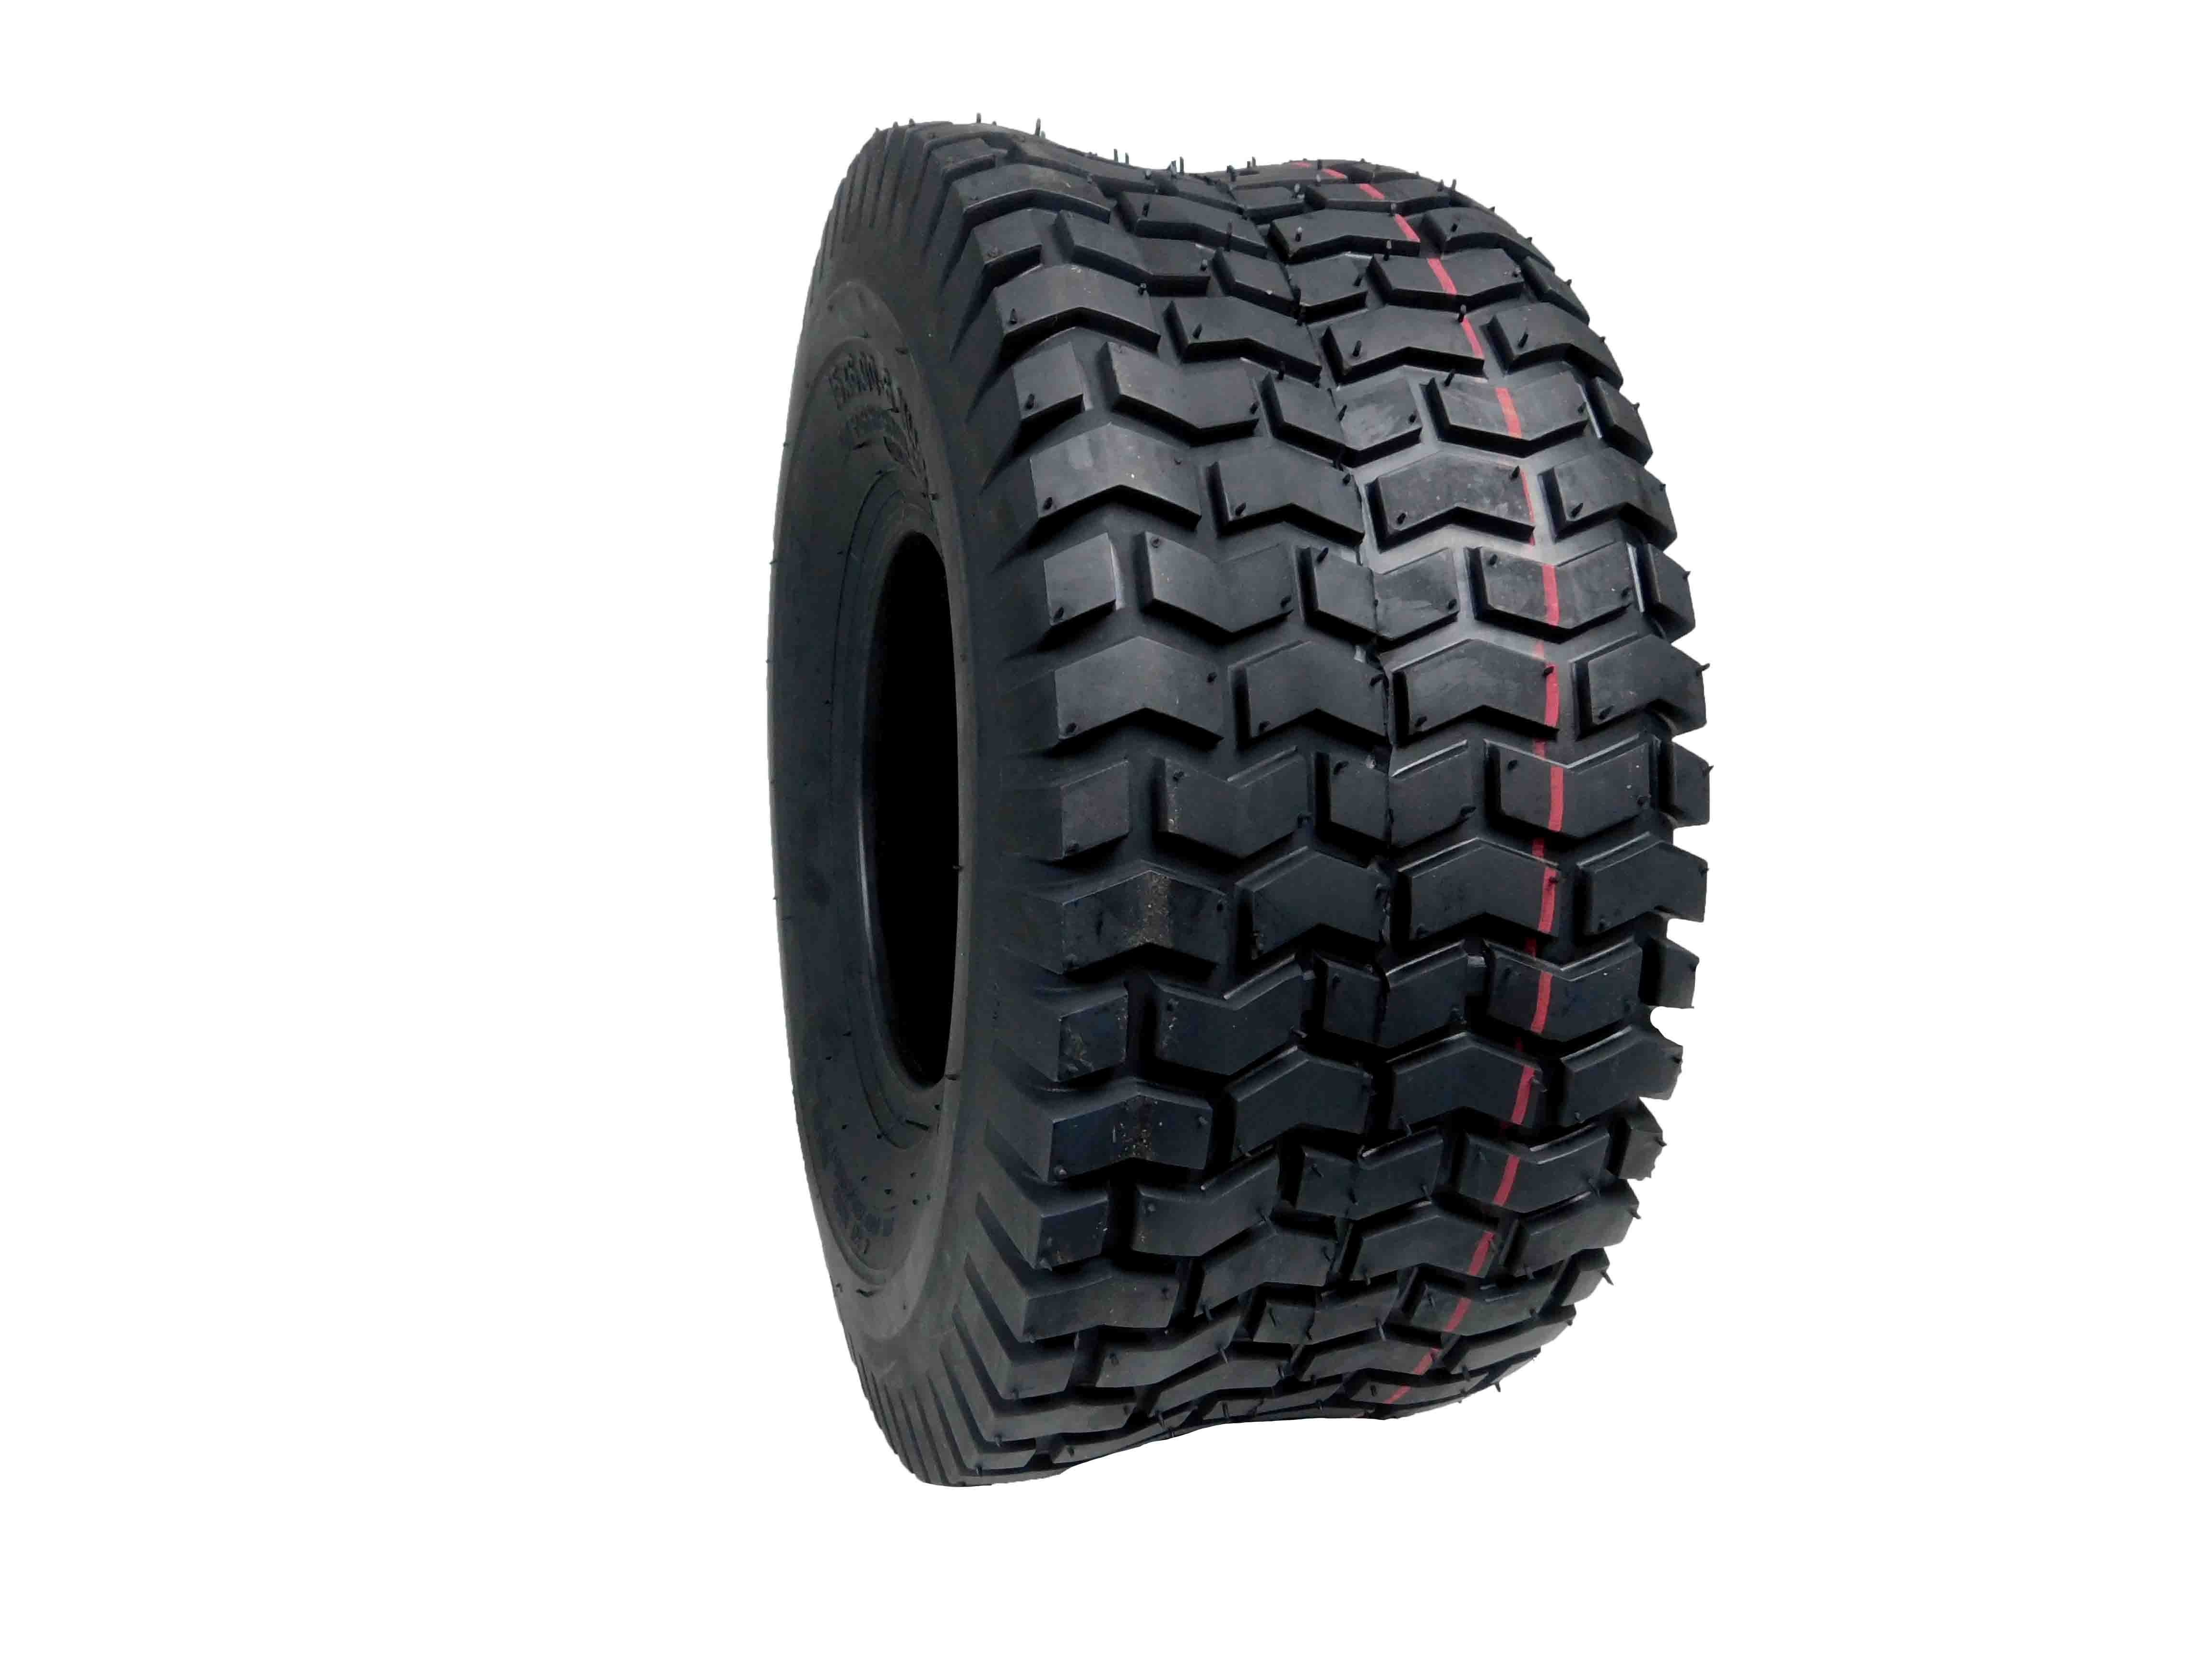 MASSFX 4 New Lawn Mower Tires 15x6-6 20x8-8 4 PLY Four Pack Lawn /& Garden